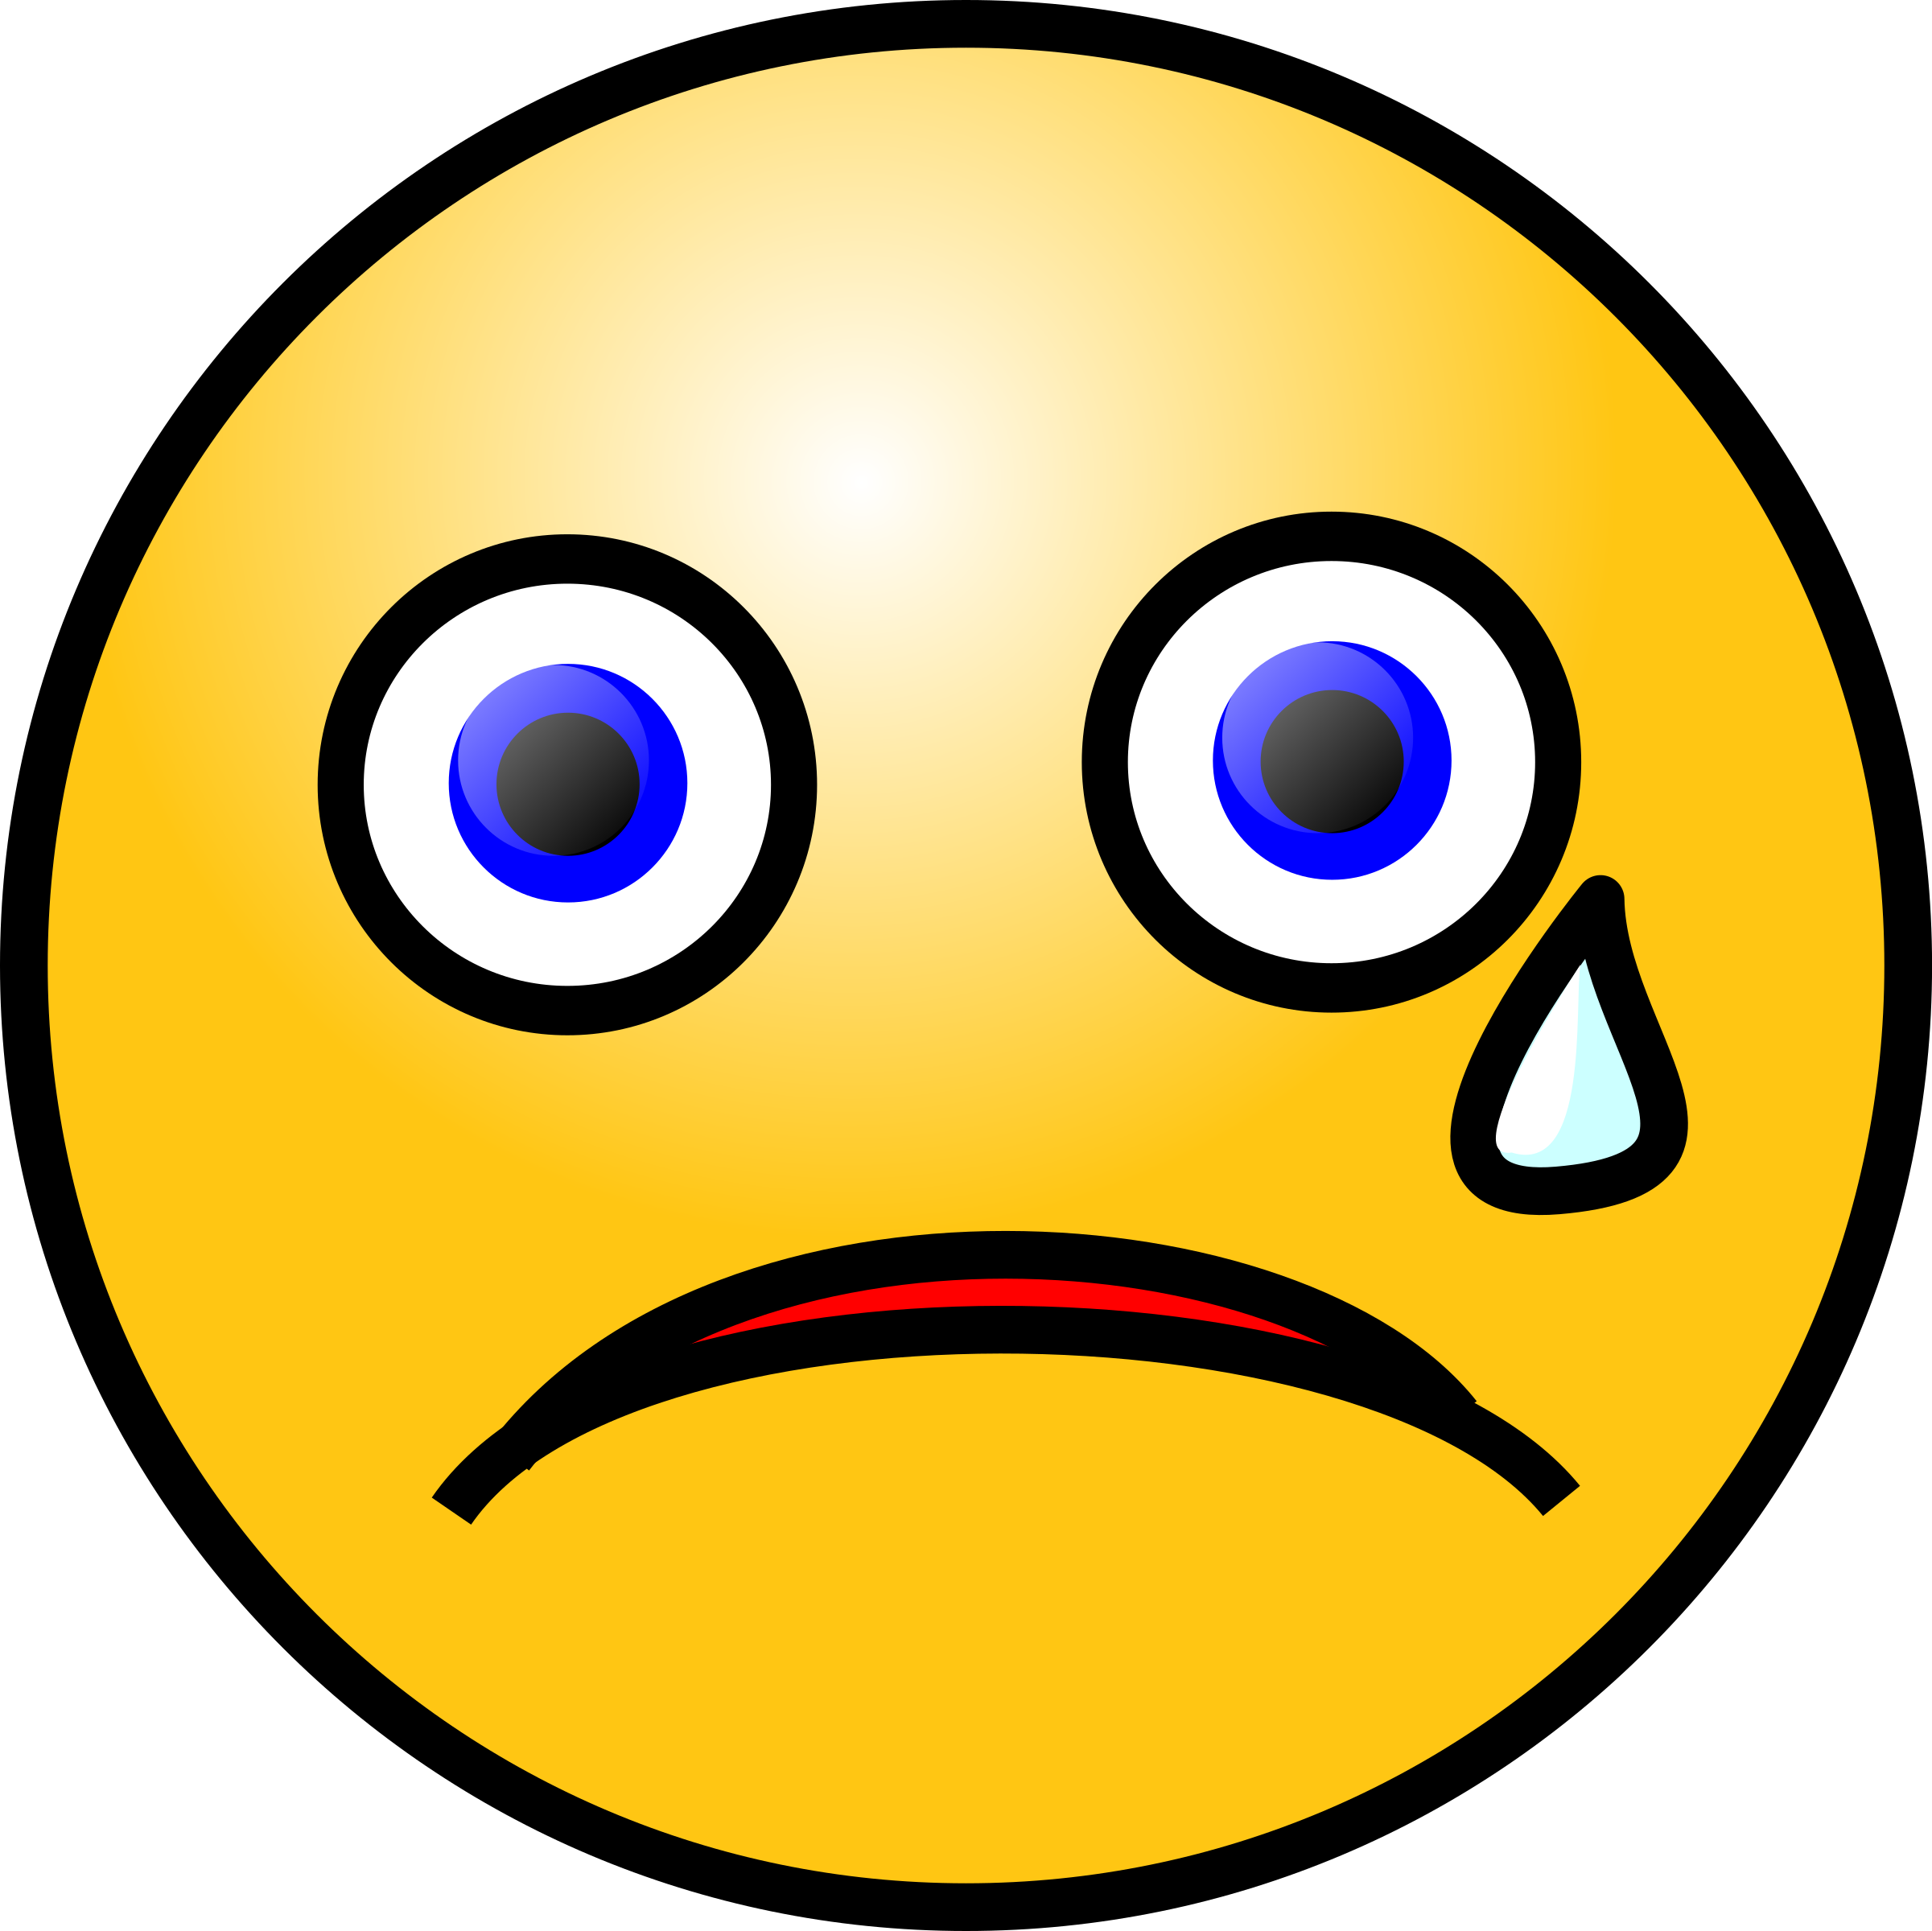 Crying face png. Emoticons icons free and